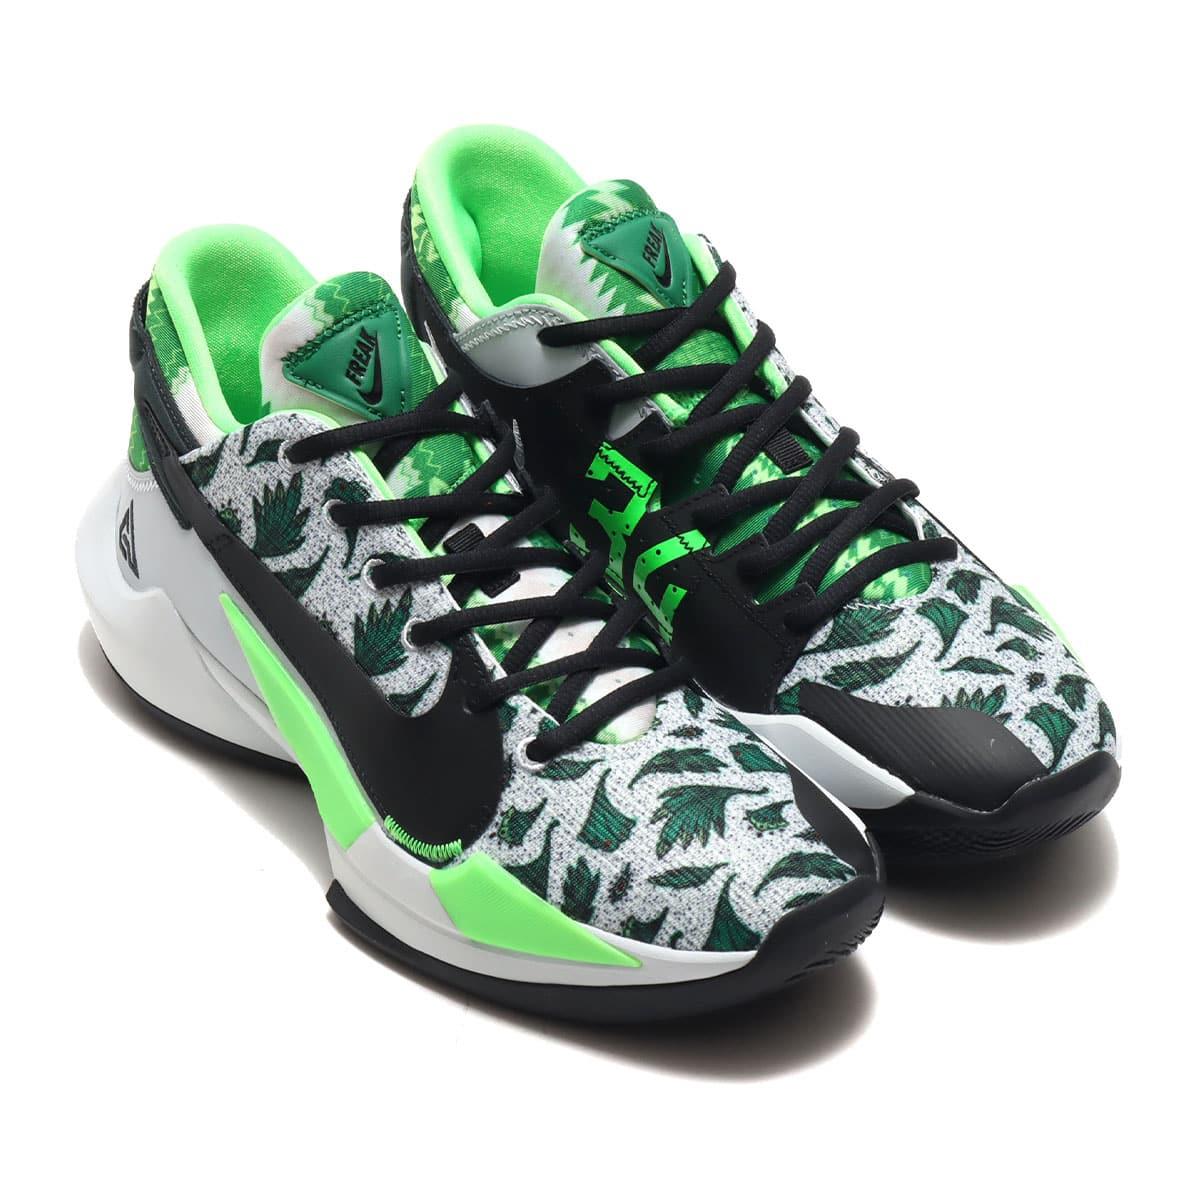 NIKE ZOOM FREAK 2 PURE PLATINUM/BLACK-PINE GREEN 20FA-S_photo_large